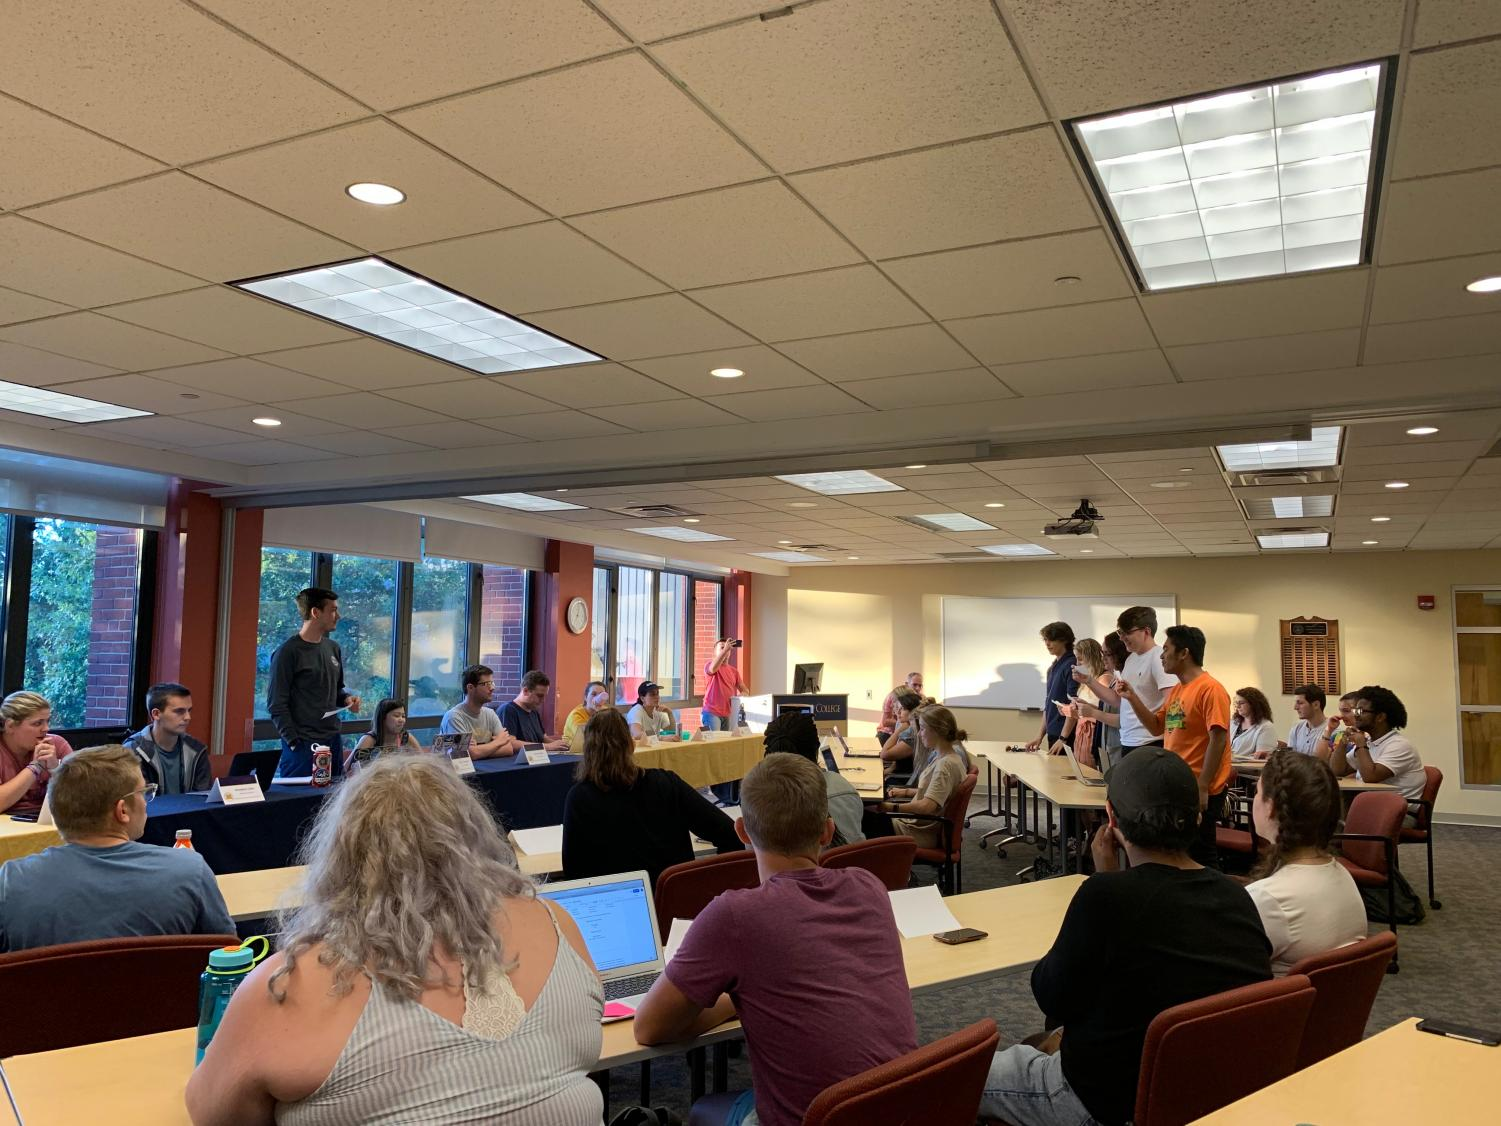 Members of Allegheny Student Government attend the weekly general assembly meeting at 7 p.m. on Tuesday Sept. 24, 2019, in the Henderson Campus Center room 301/302.